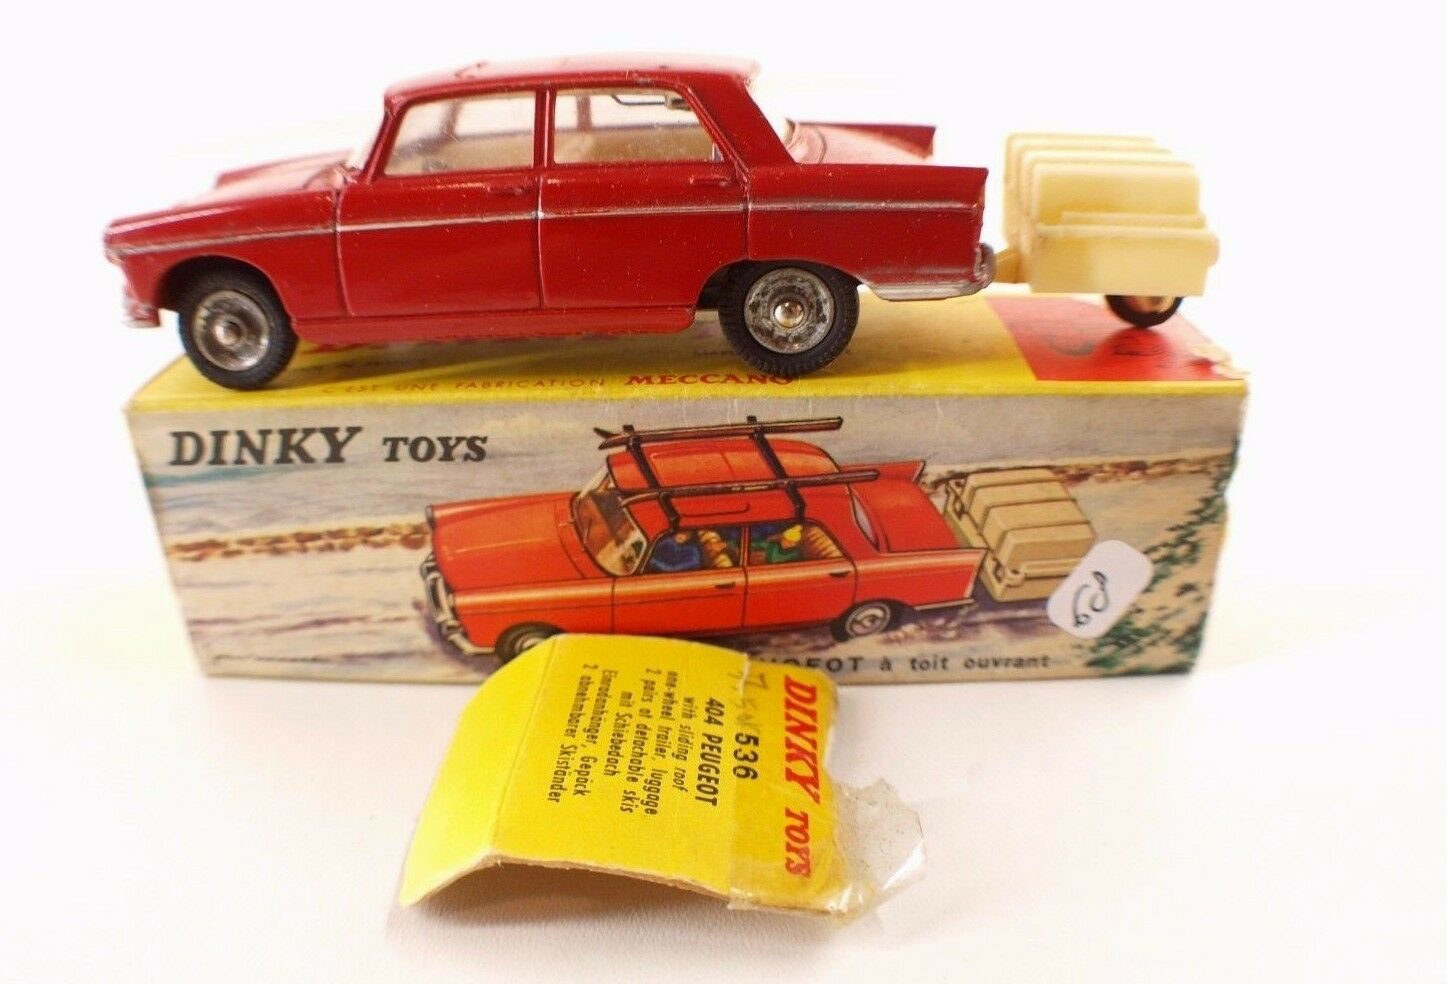 Dinky toys F nº 536 peugeot 404-roof trailer skis in box